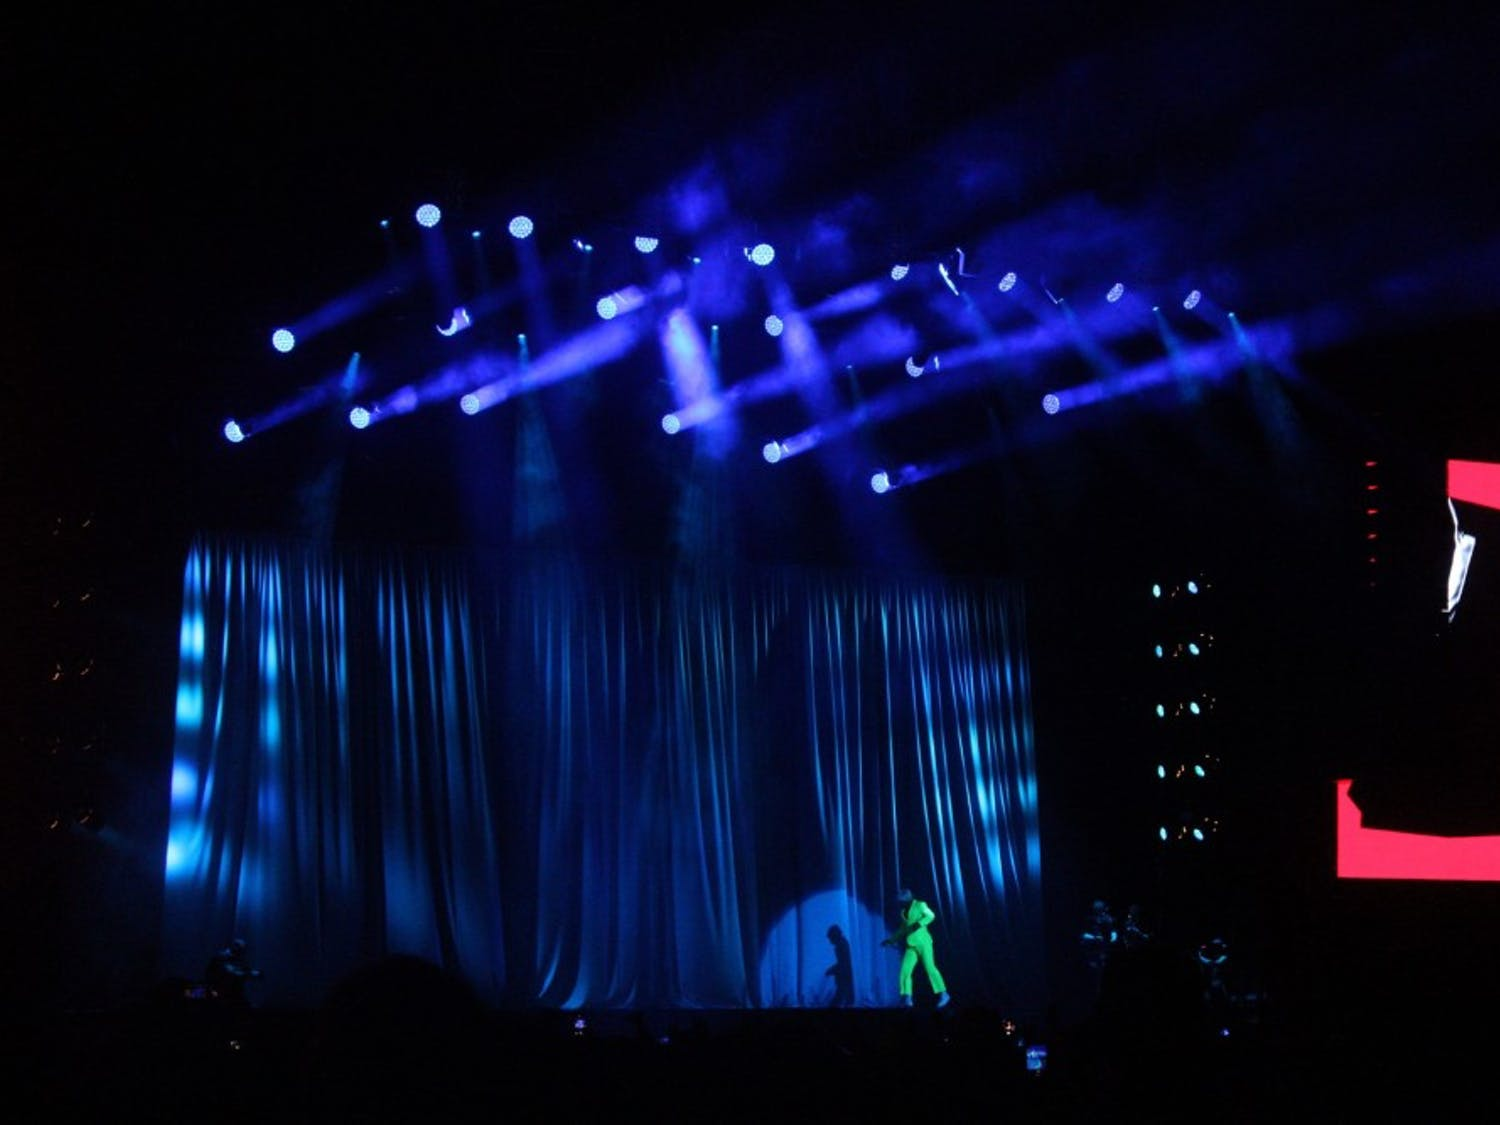 Tyler, the Creator, or IGOR, kept audience members entertained Friday with his neon-green suit and blonde wig as he played through the No.-1 album in the country.